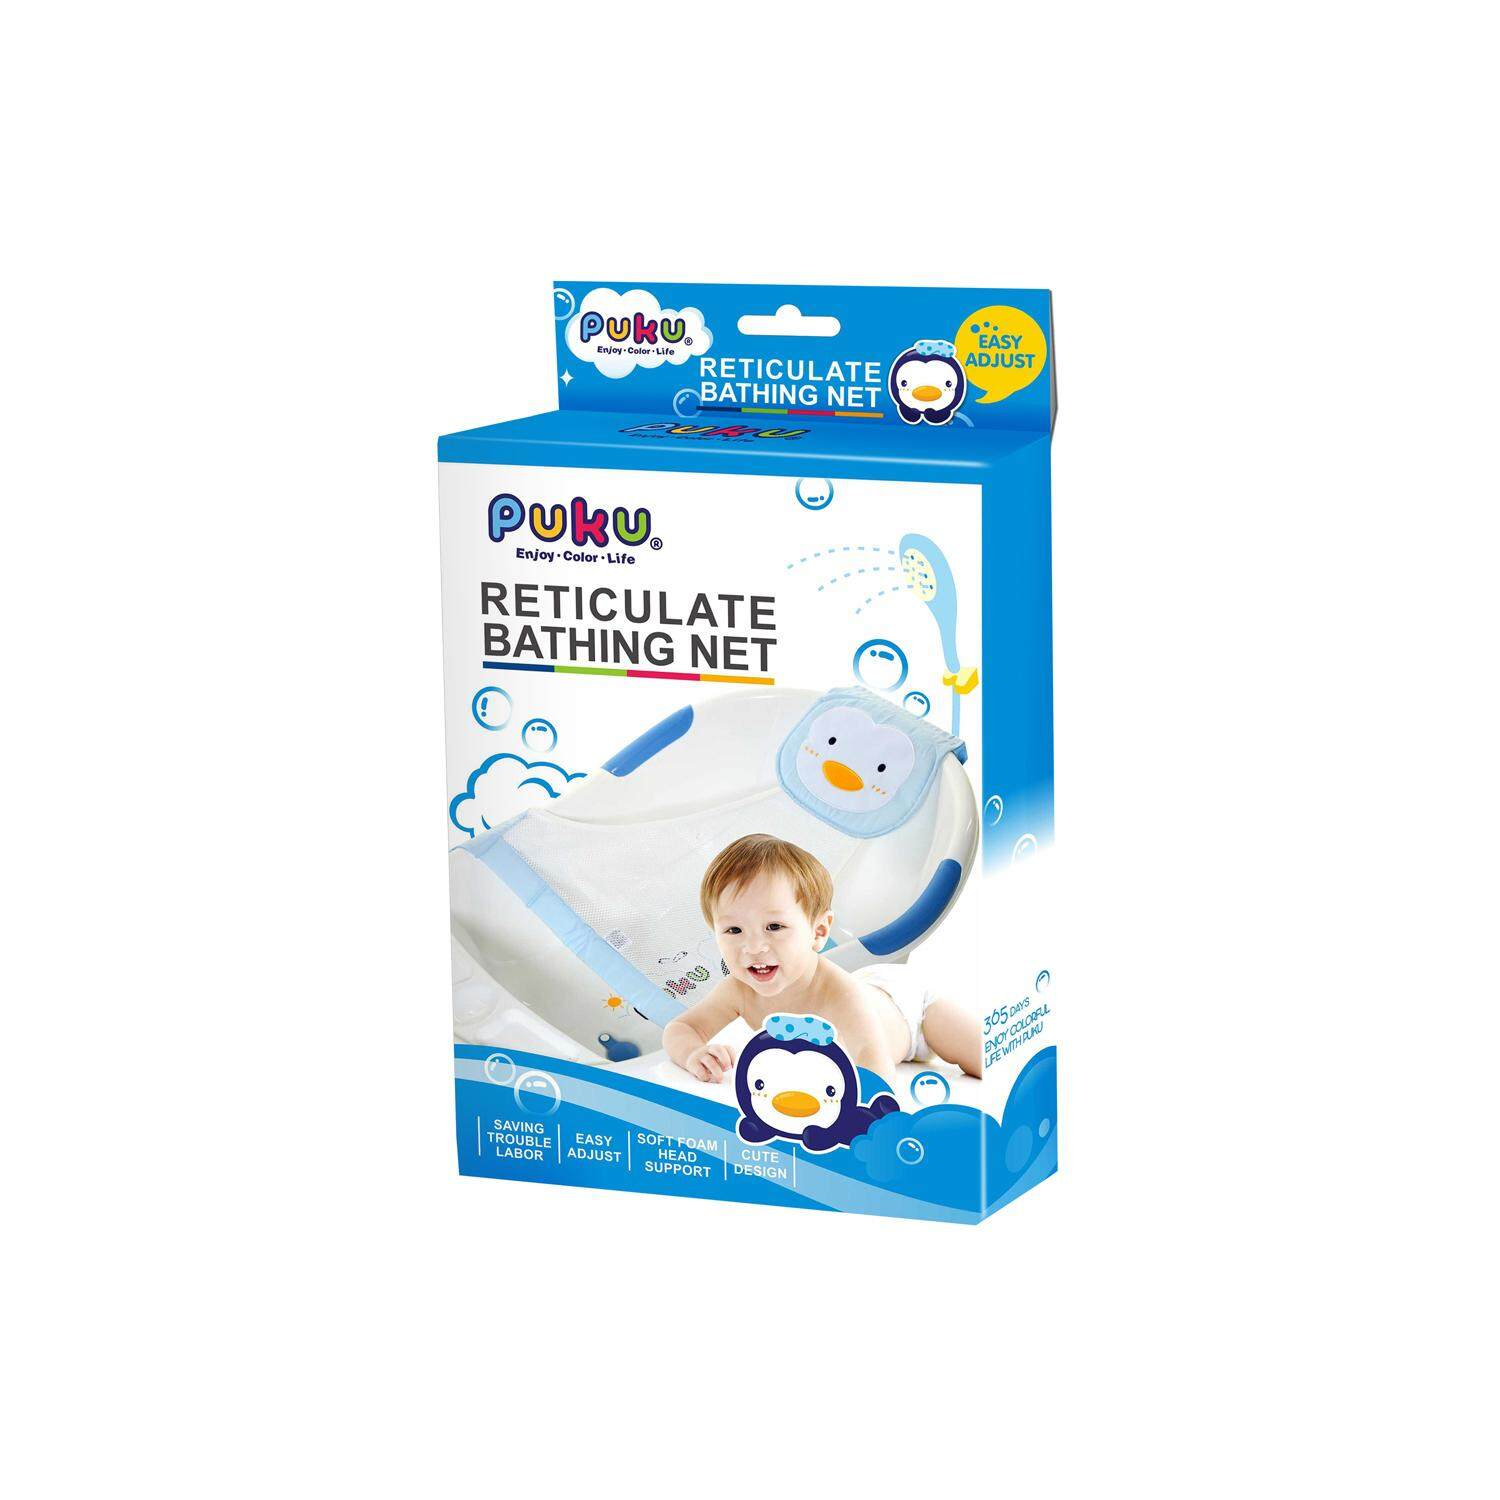 PUKU Baby Reticulated Bathing Nets / For Newborn to 6 months baby